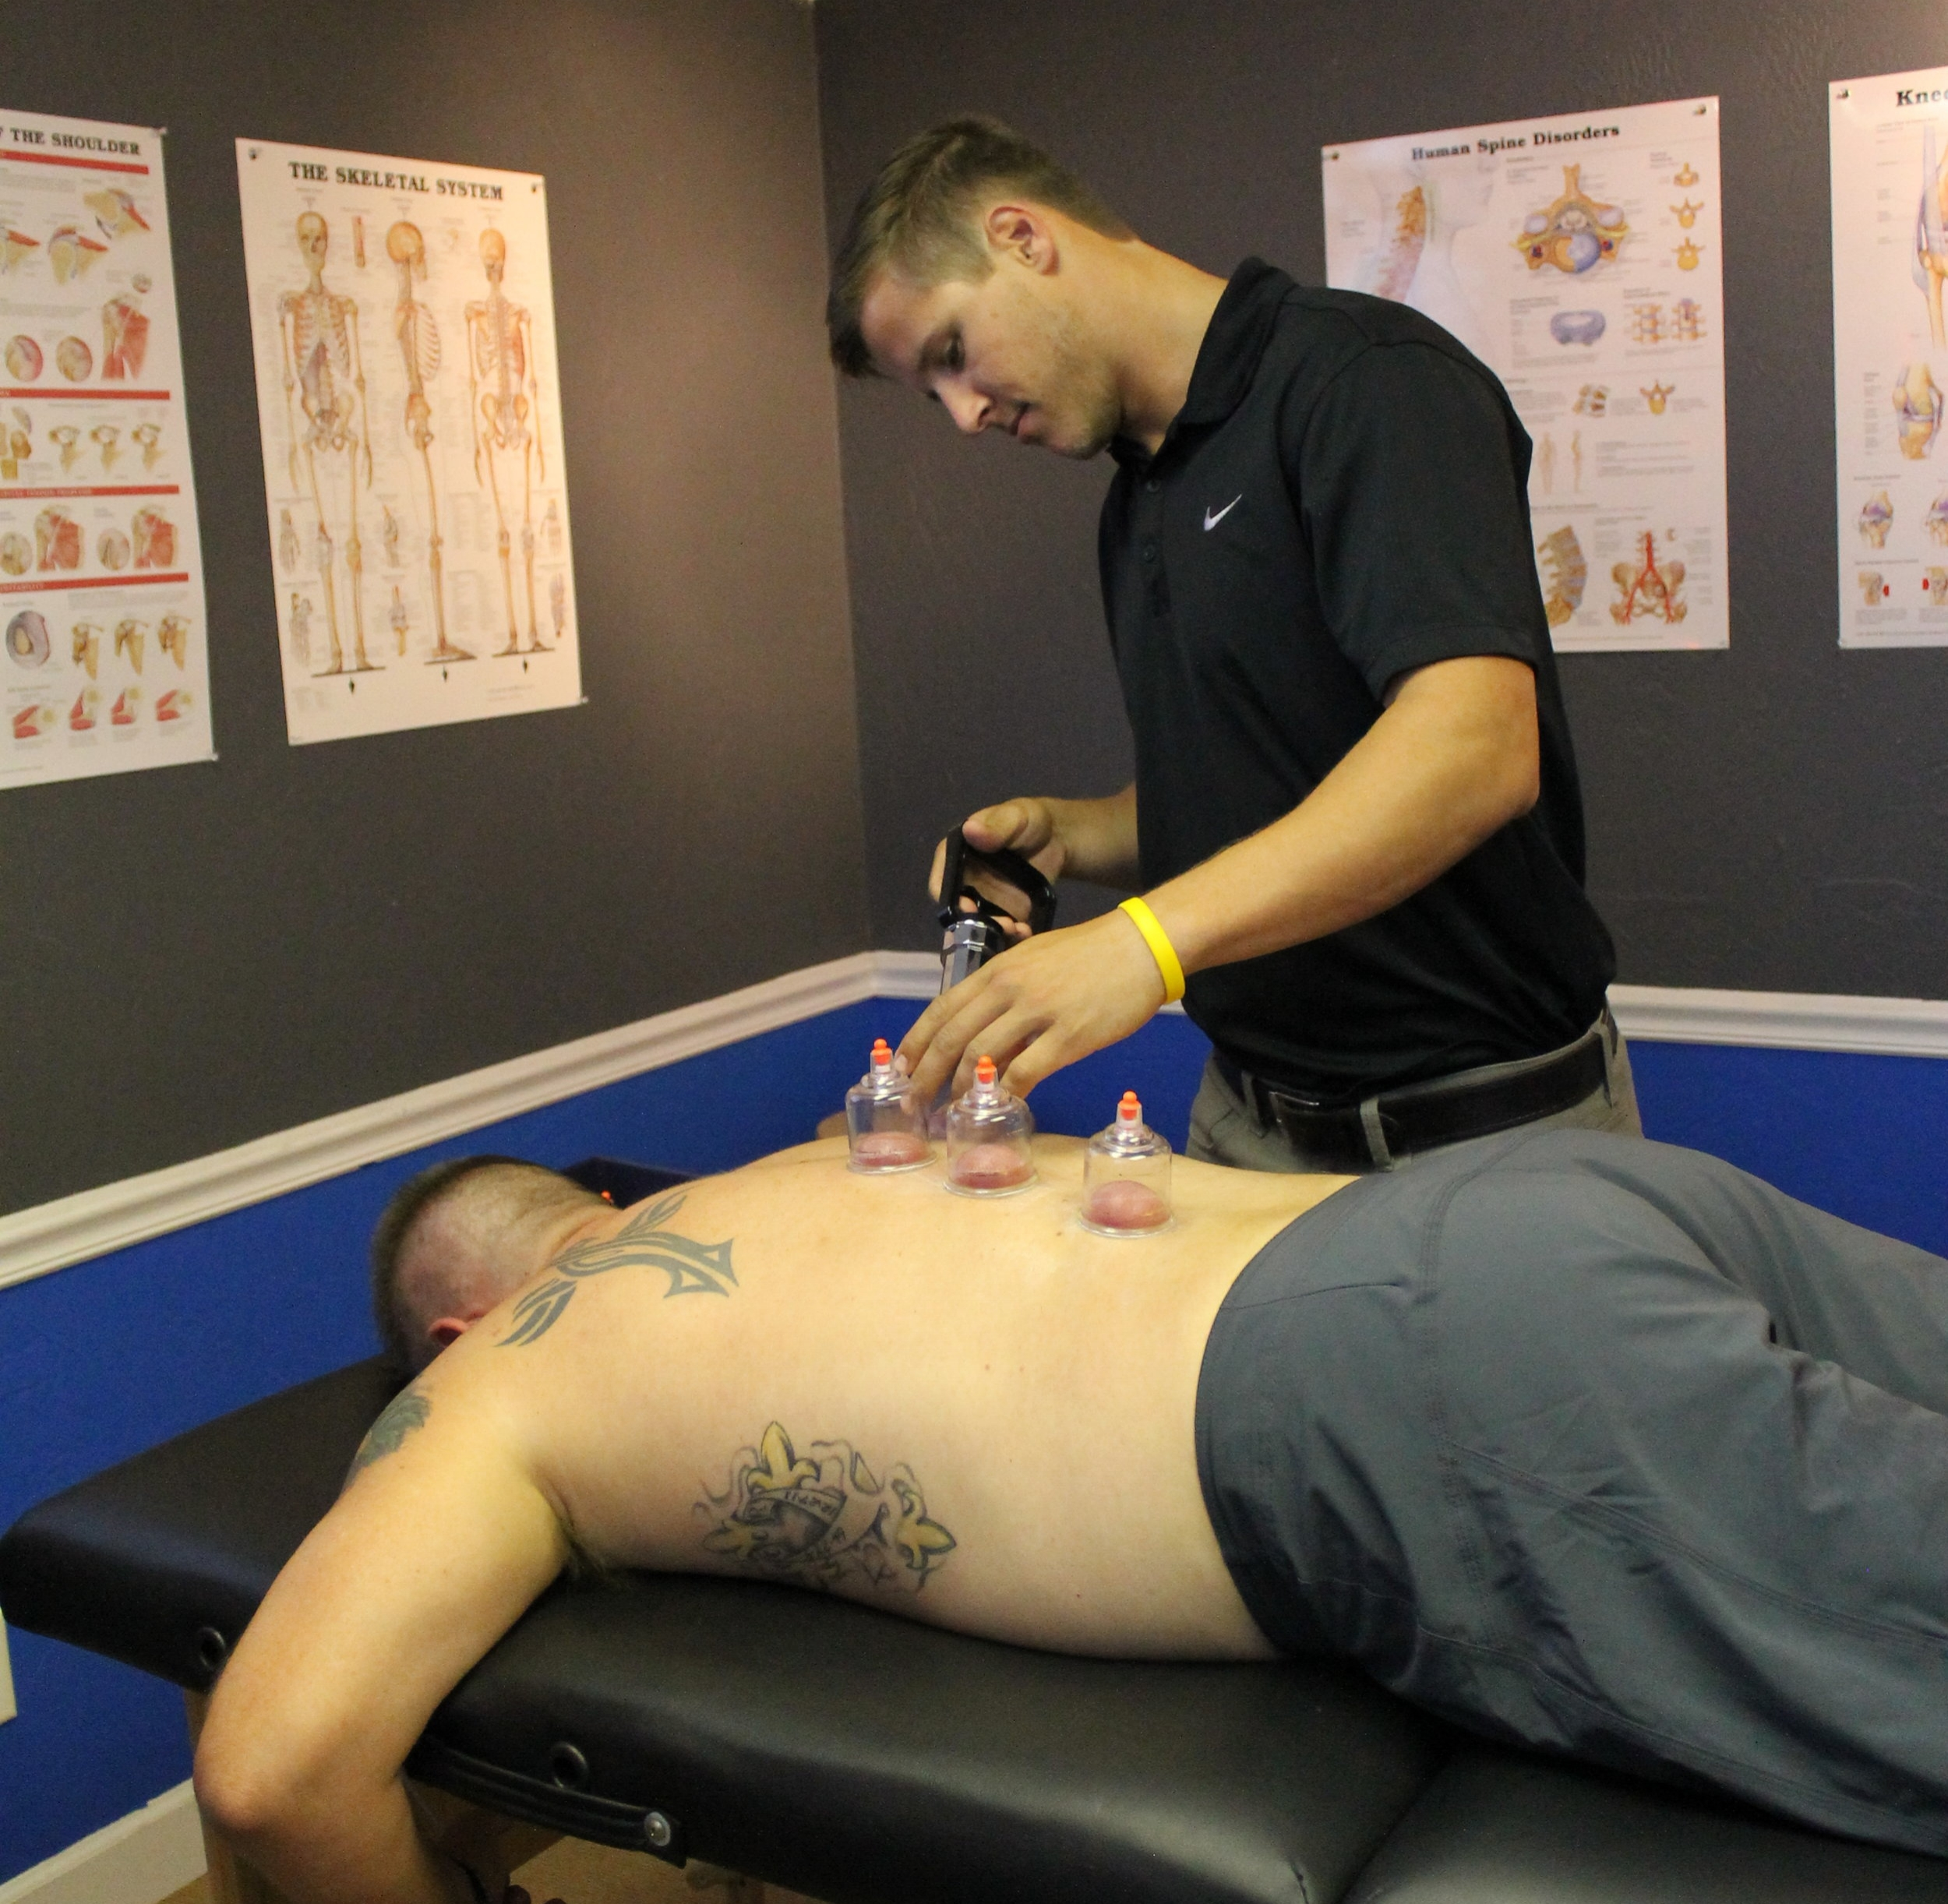 Cupping Therapy   By creating suction, negative pressure, and therapeutic inflammation, Cupping Therapy is used to soften tight muscles and tone attachments, loosen adhesions and lift connective tissue. It also brings hydration and blood flow to body tissues, and drain excess fluids and toxins by opening lymphatic pathways.  Just look at Olympic athletes like Michael Phelps for proof as to why you should try out this therapy!